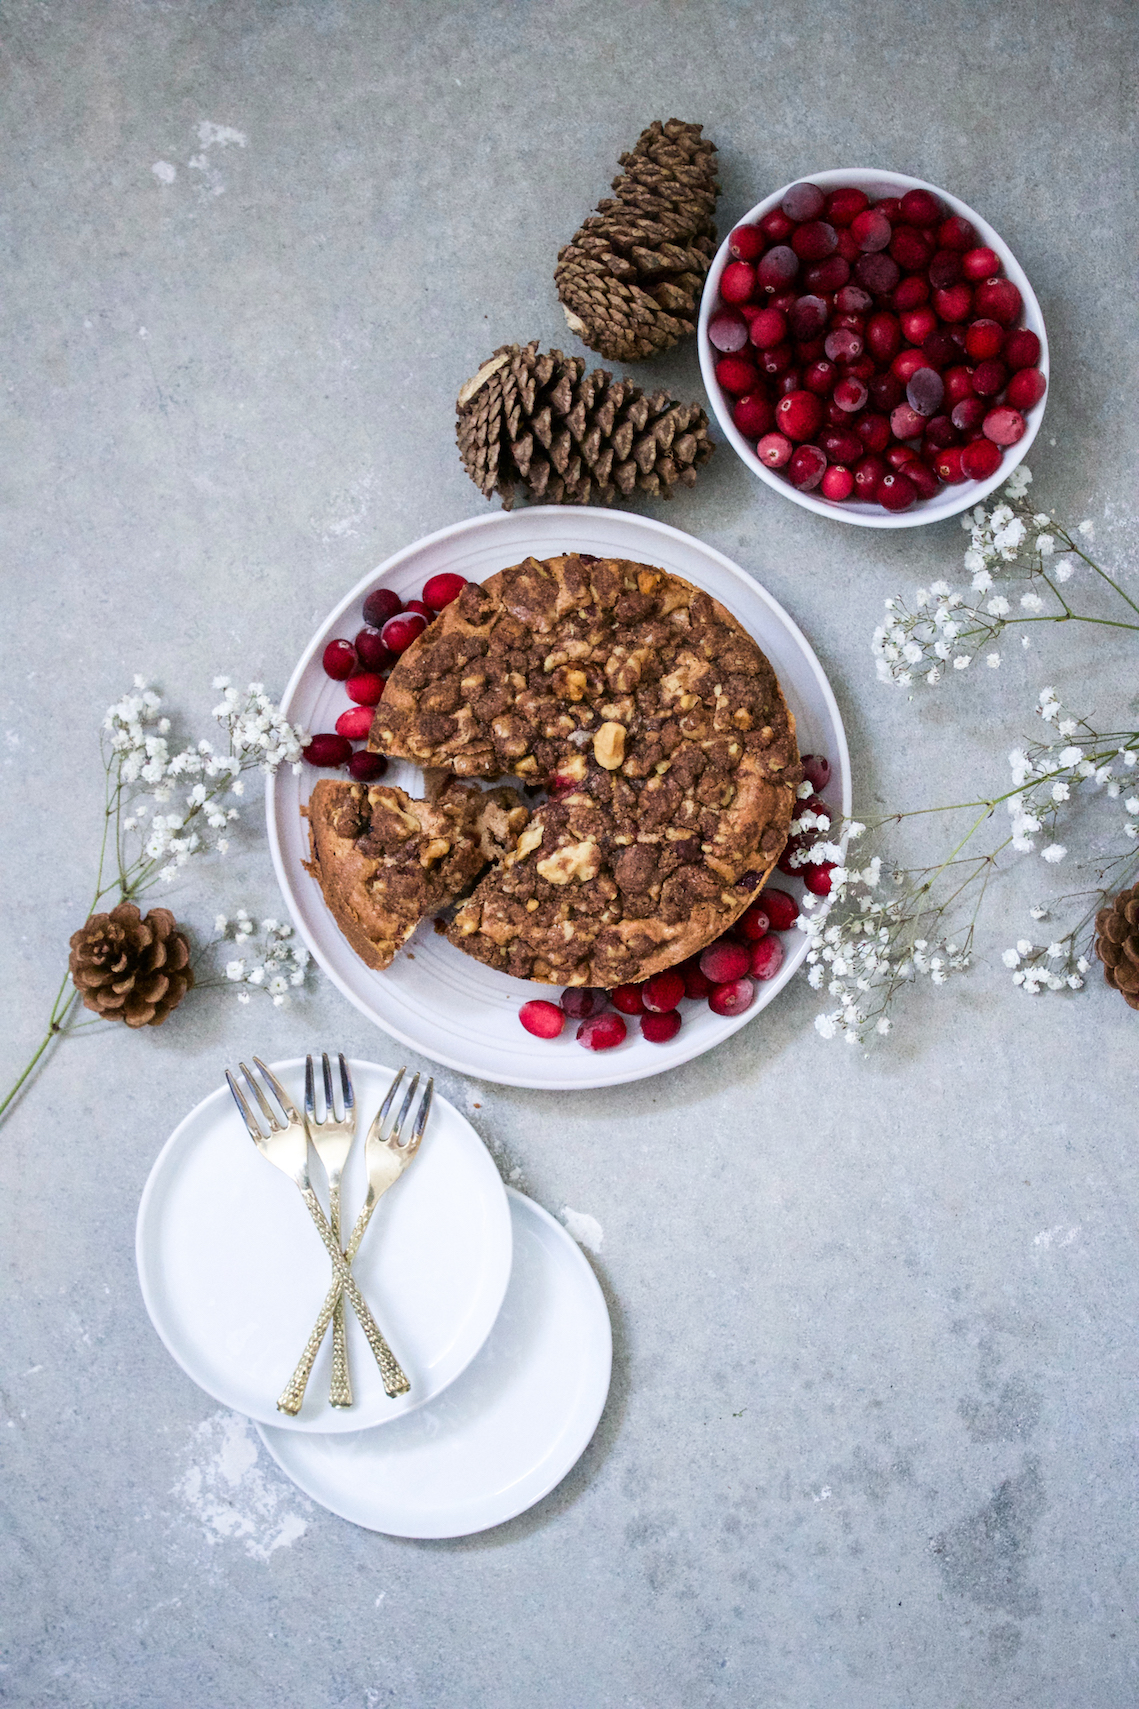 Cranberry coffee cake 7.jpg